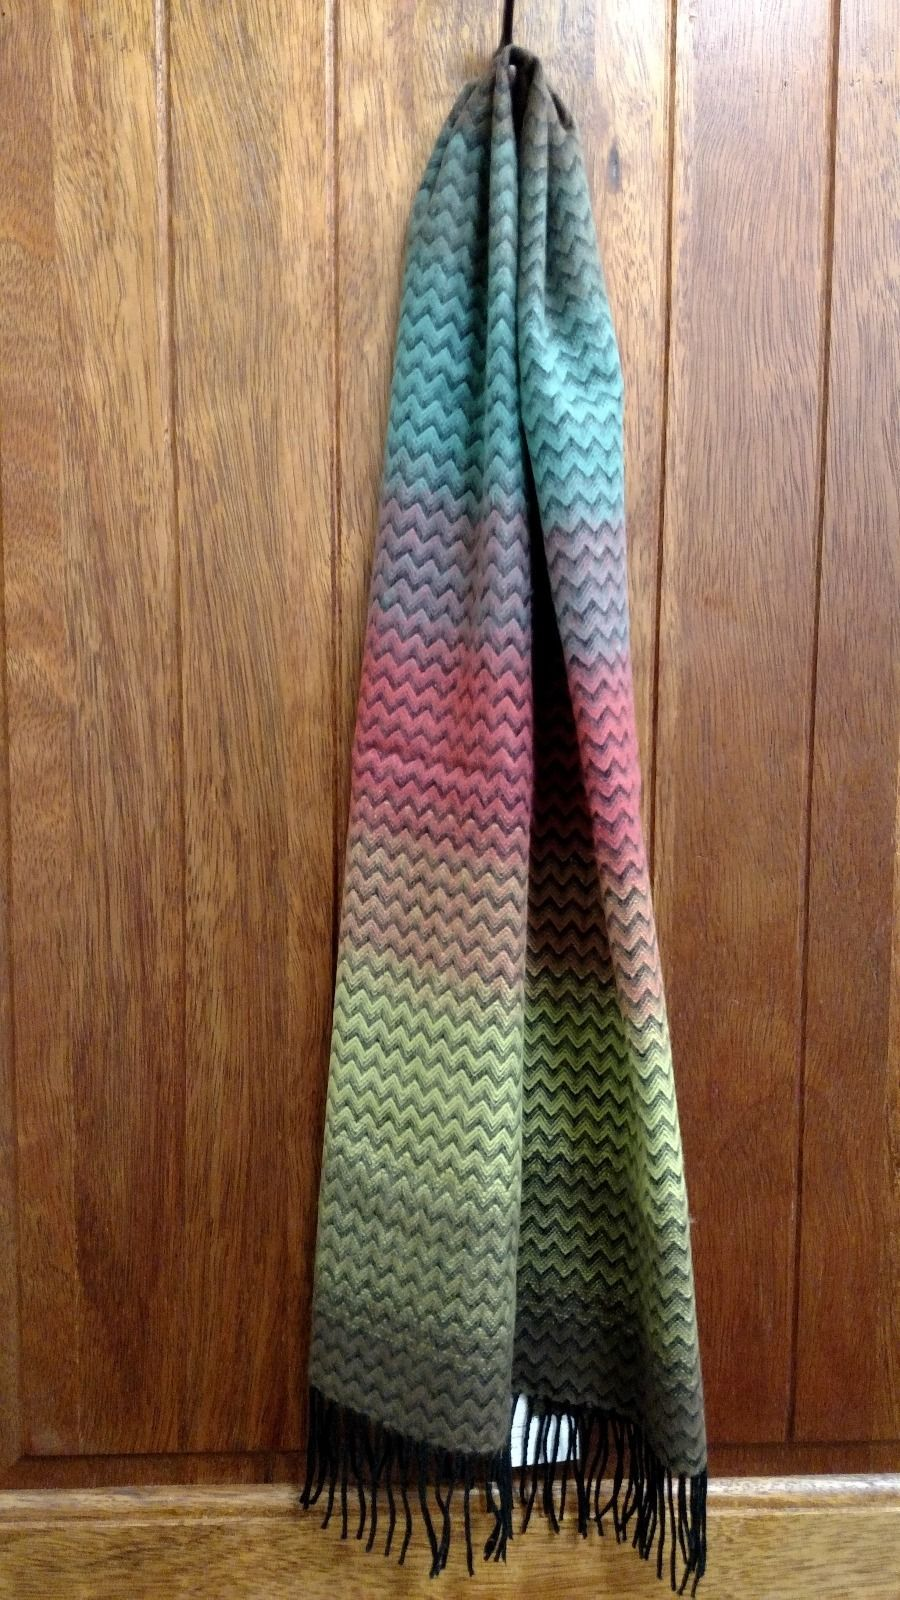 New D&Y David and Young Softer Than Cashmere Multicolored Scarf https://t.co/Sbskb0uGn6 https://t.co/lf6sdQibpW